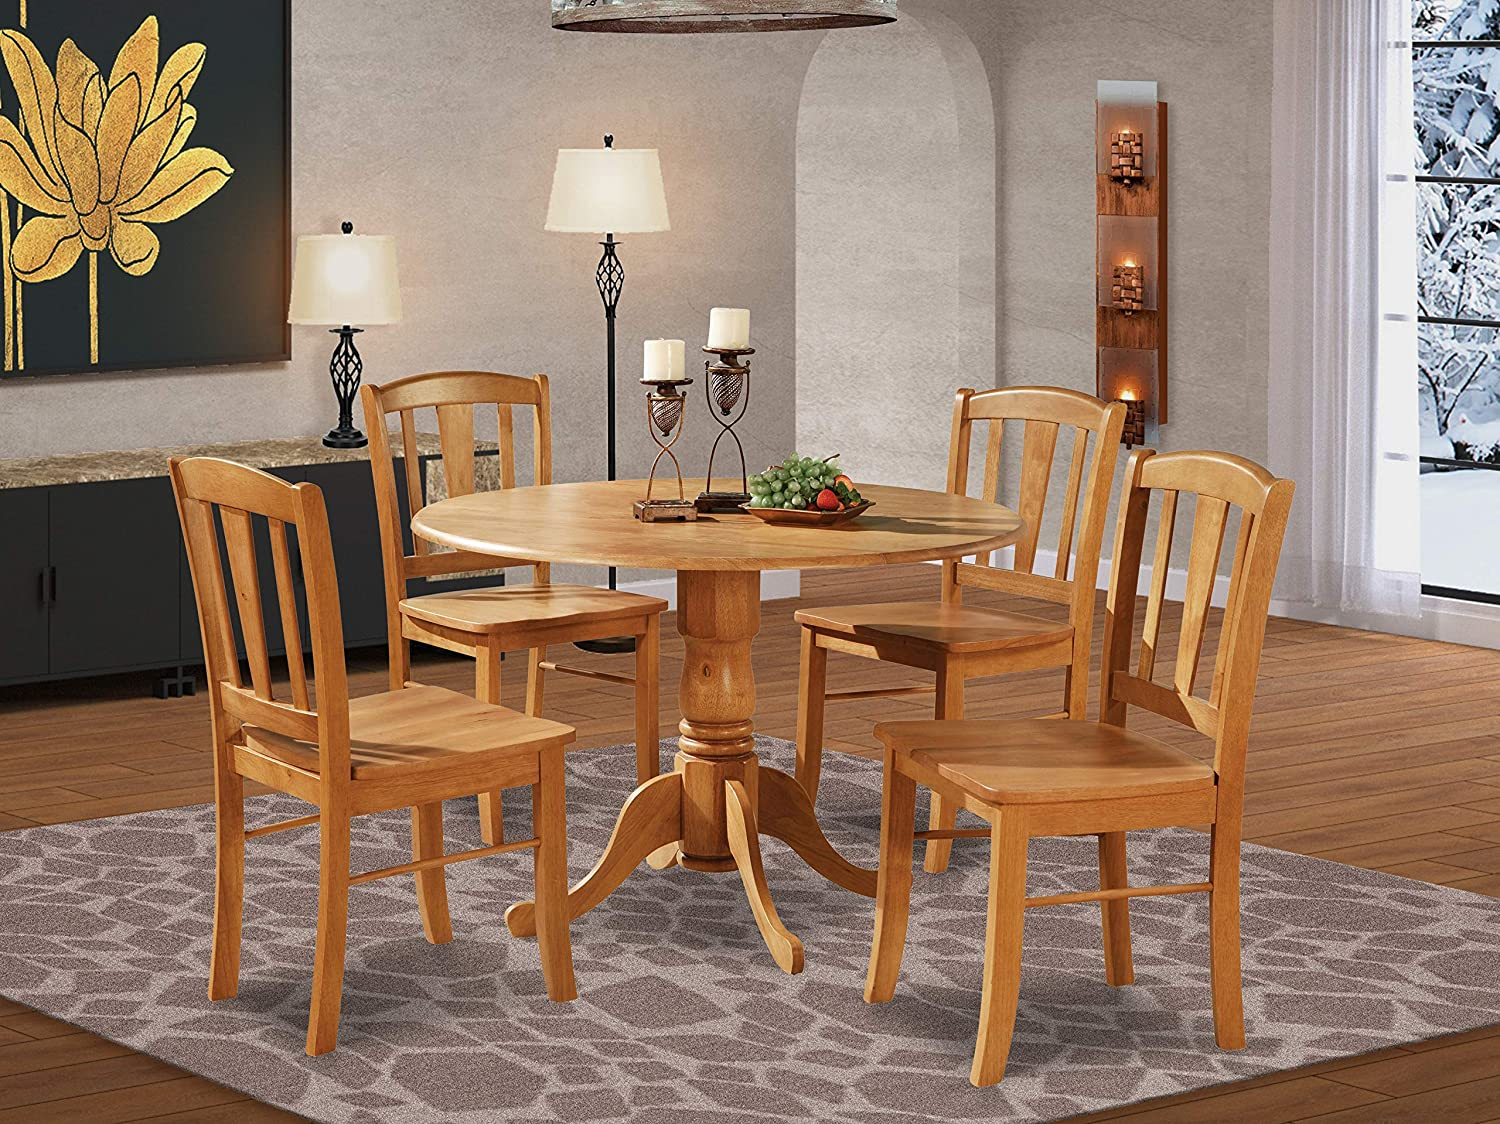 Amazon Com Dlin5 Oak W 5 Pc Small Kitchen Table And Chairs Set Round Table And 4 Dinette Chairs Chairs Furniture Decor